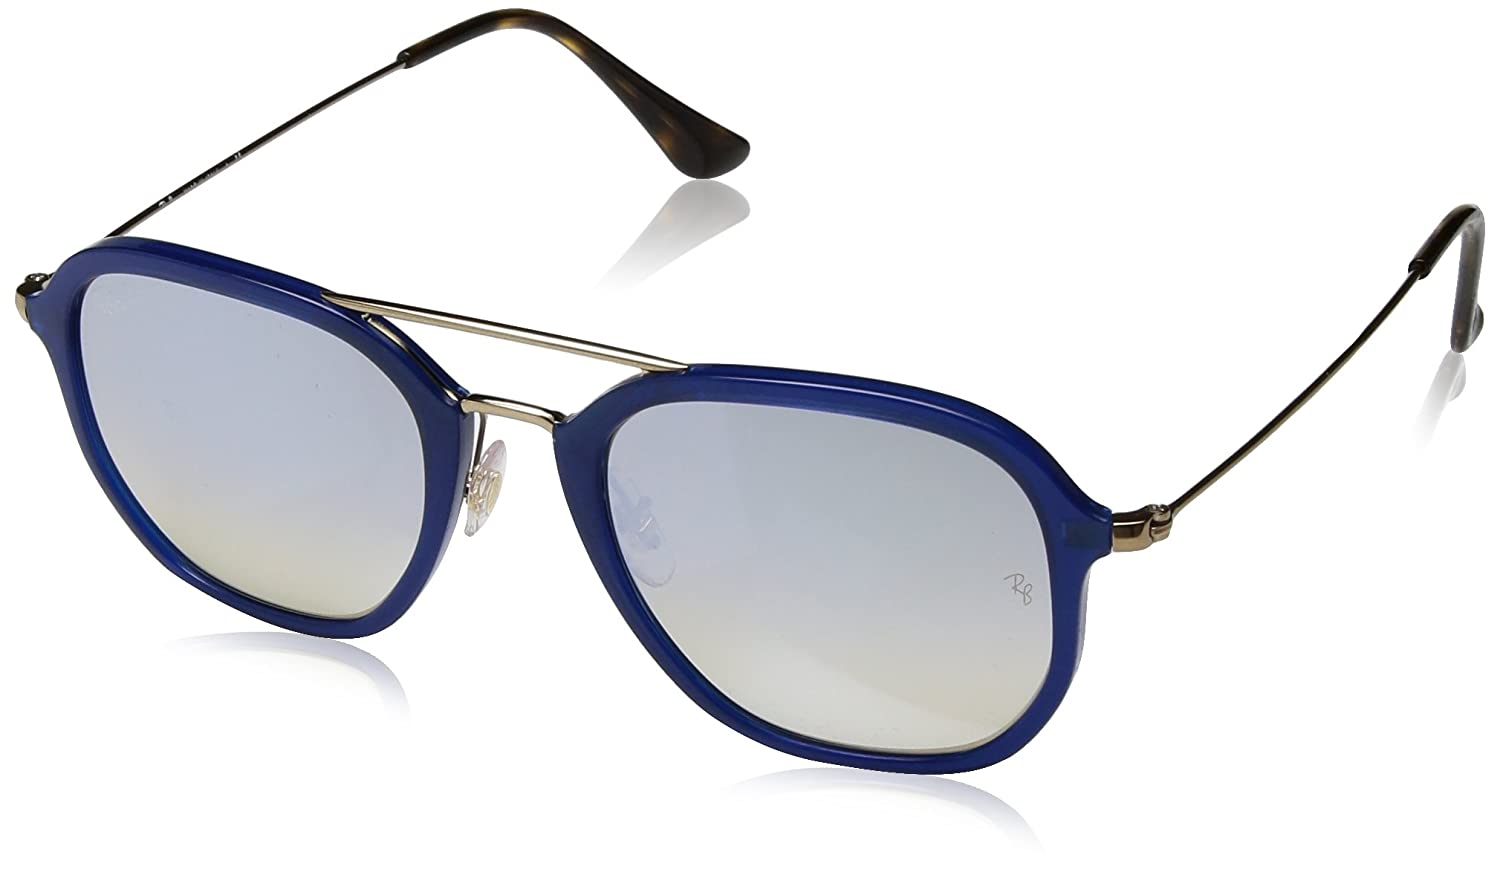 Ray-Ban Sonnenbrille (RB 4273)